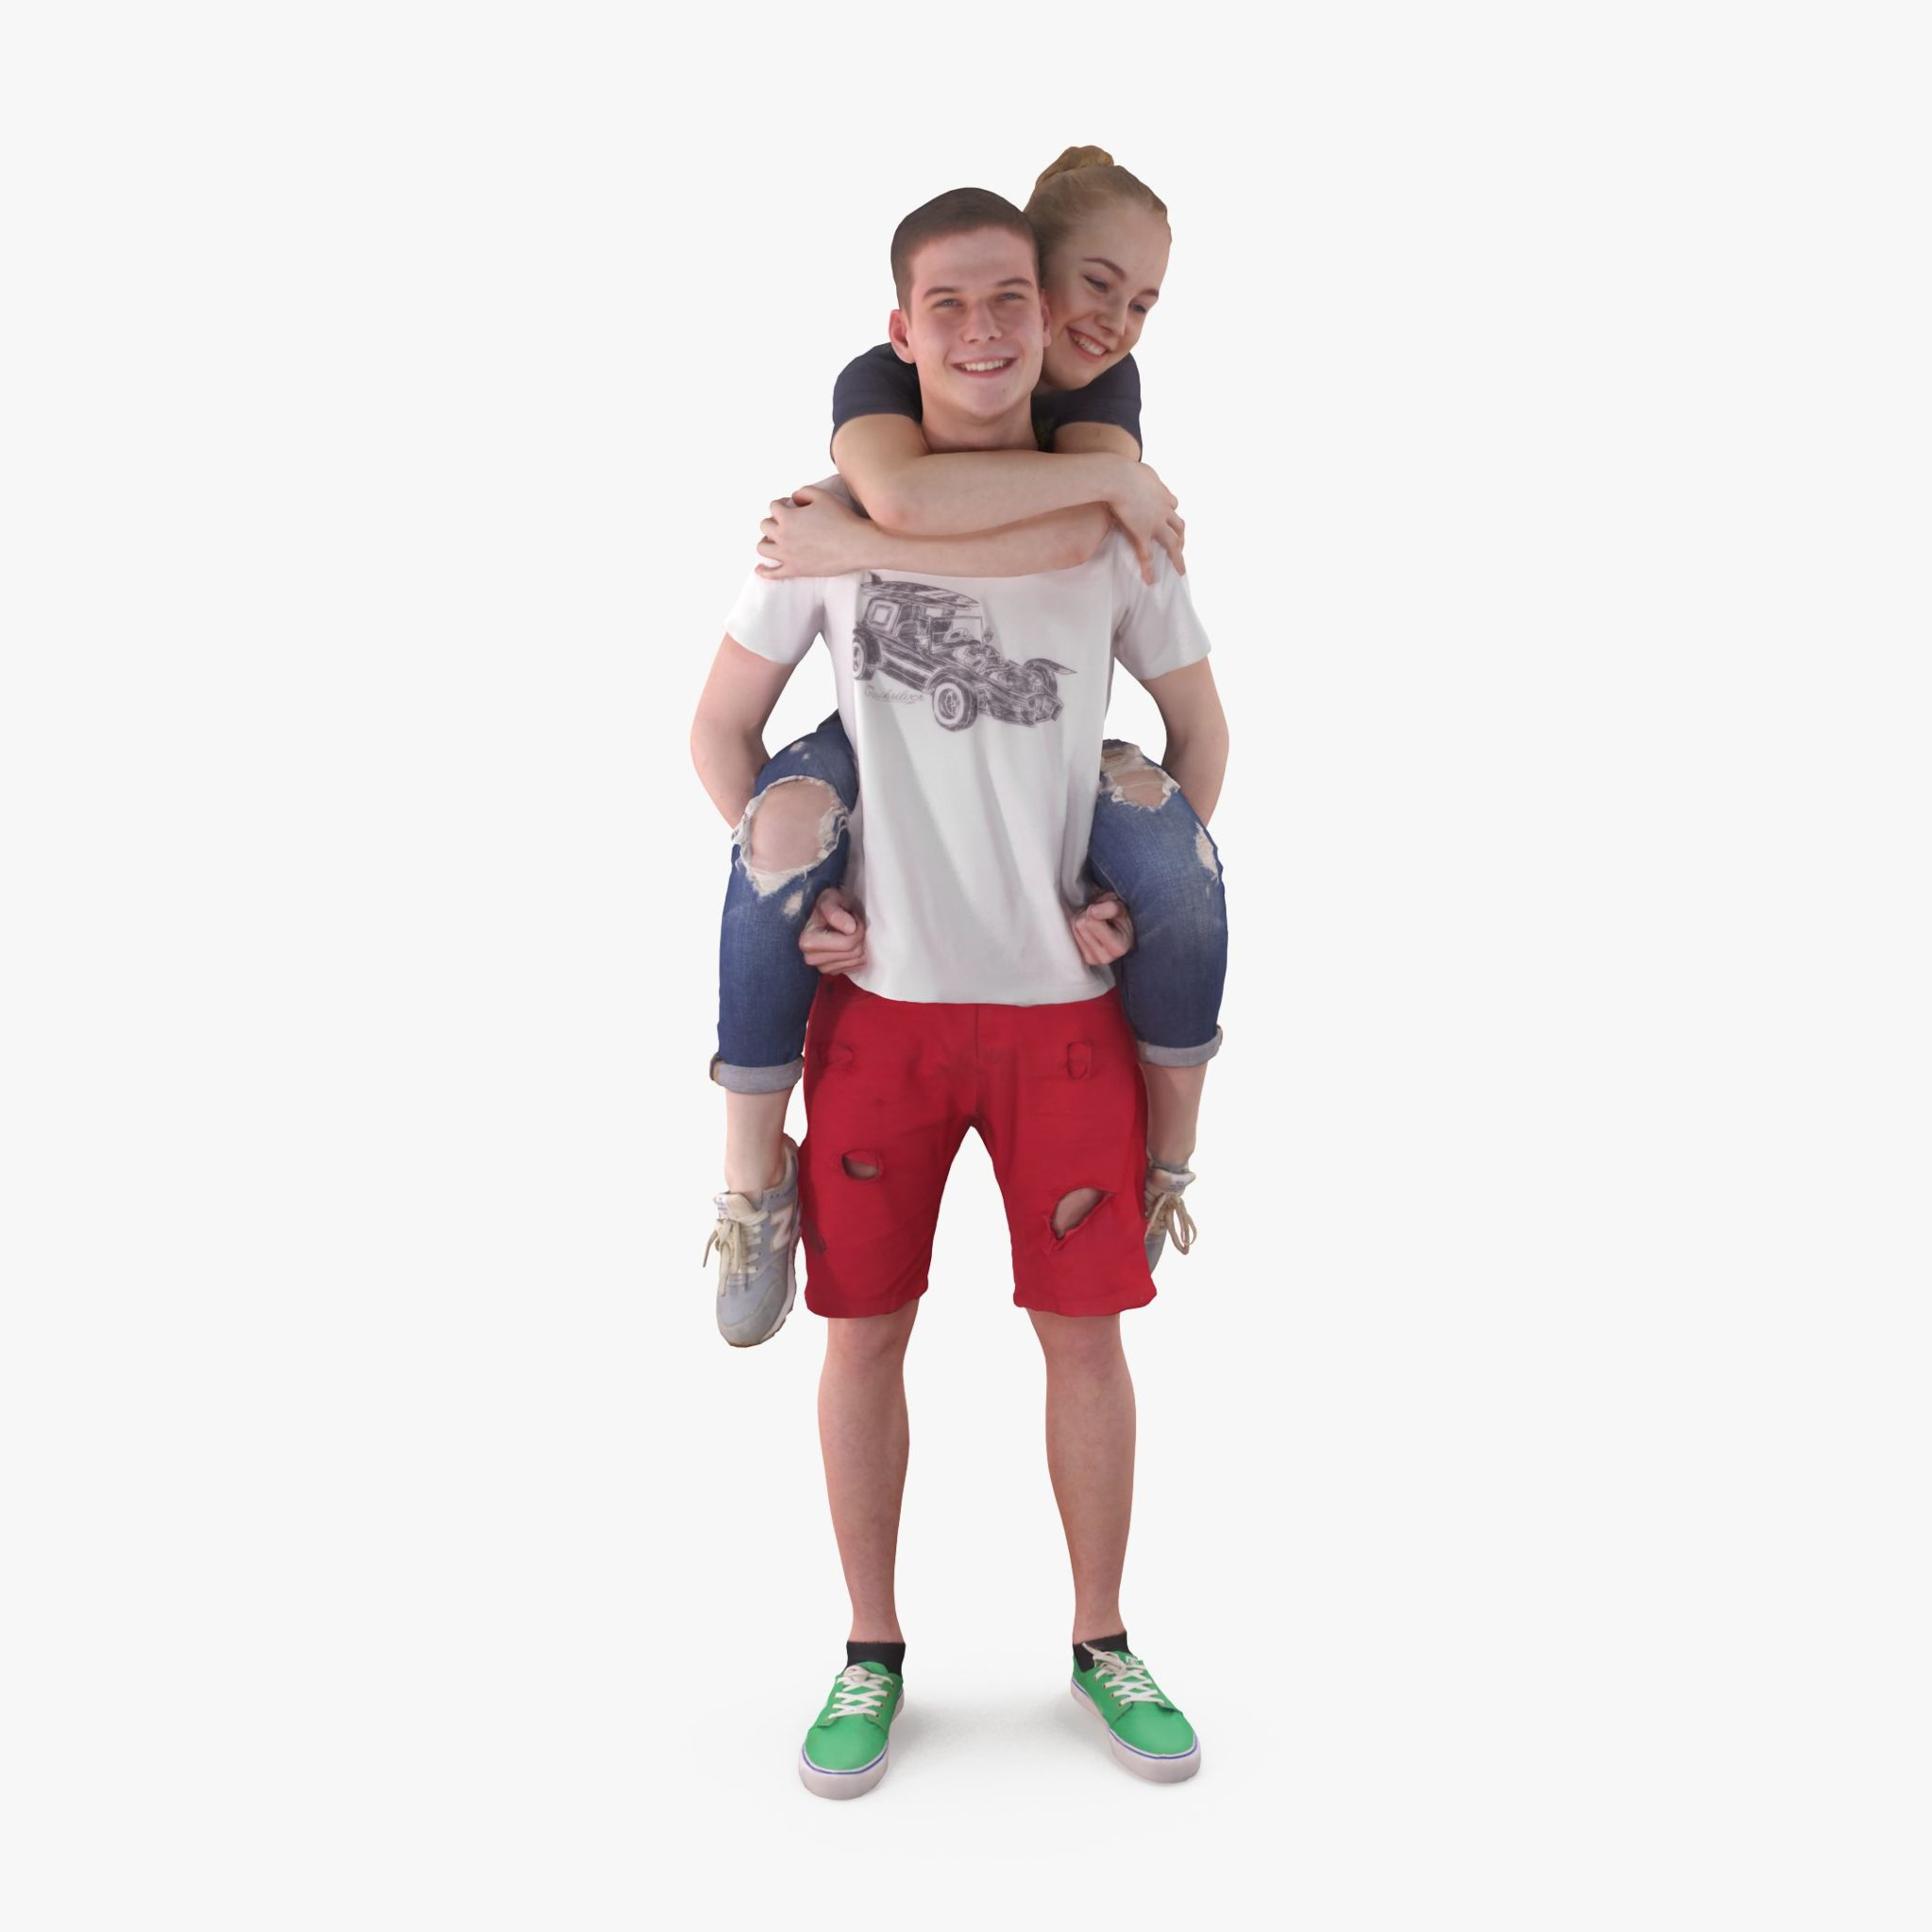 Young Couple 3D Model | 3DTree Scanning Studio